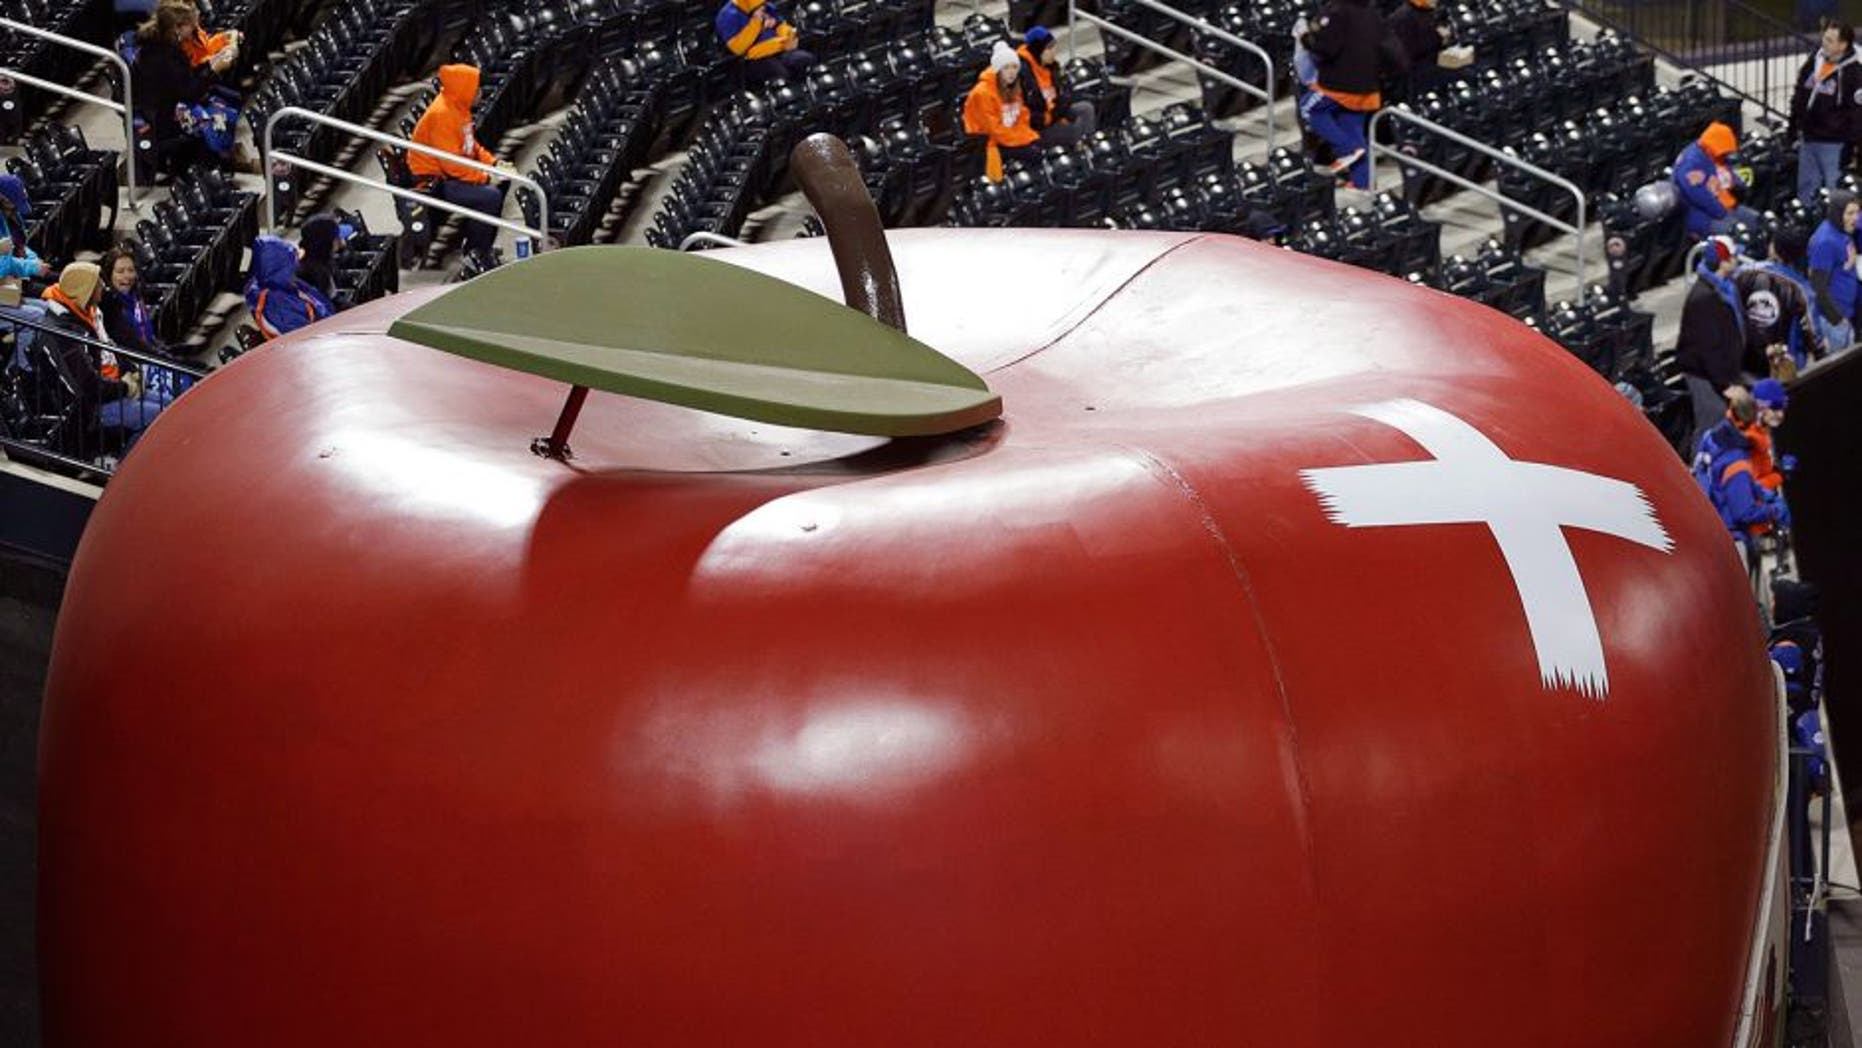 The giant apple in center field of Citi Field is seen with a bandage on it after a home run in the first game of National League baseball championship series between the New York Mets and the Chicago Cubs Sunday, Oct. 18, 2015, in New York. (AP Photo/Julie Jacobson)